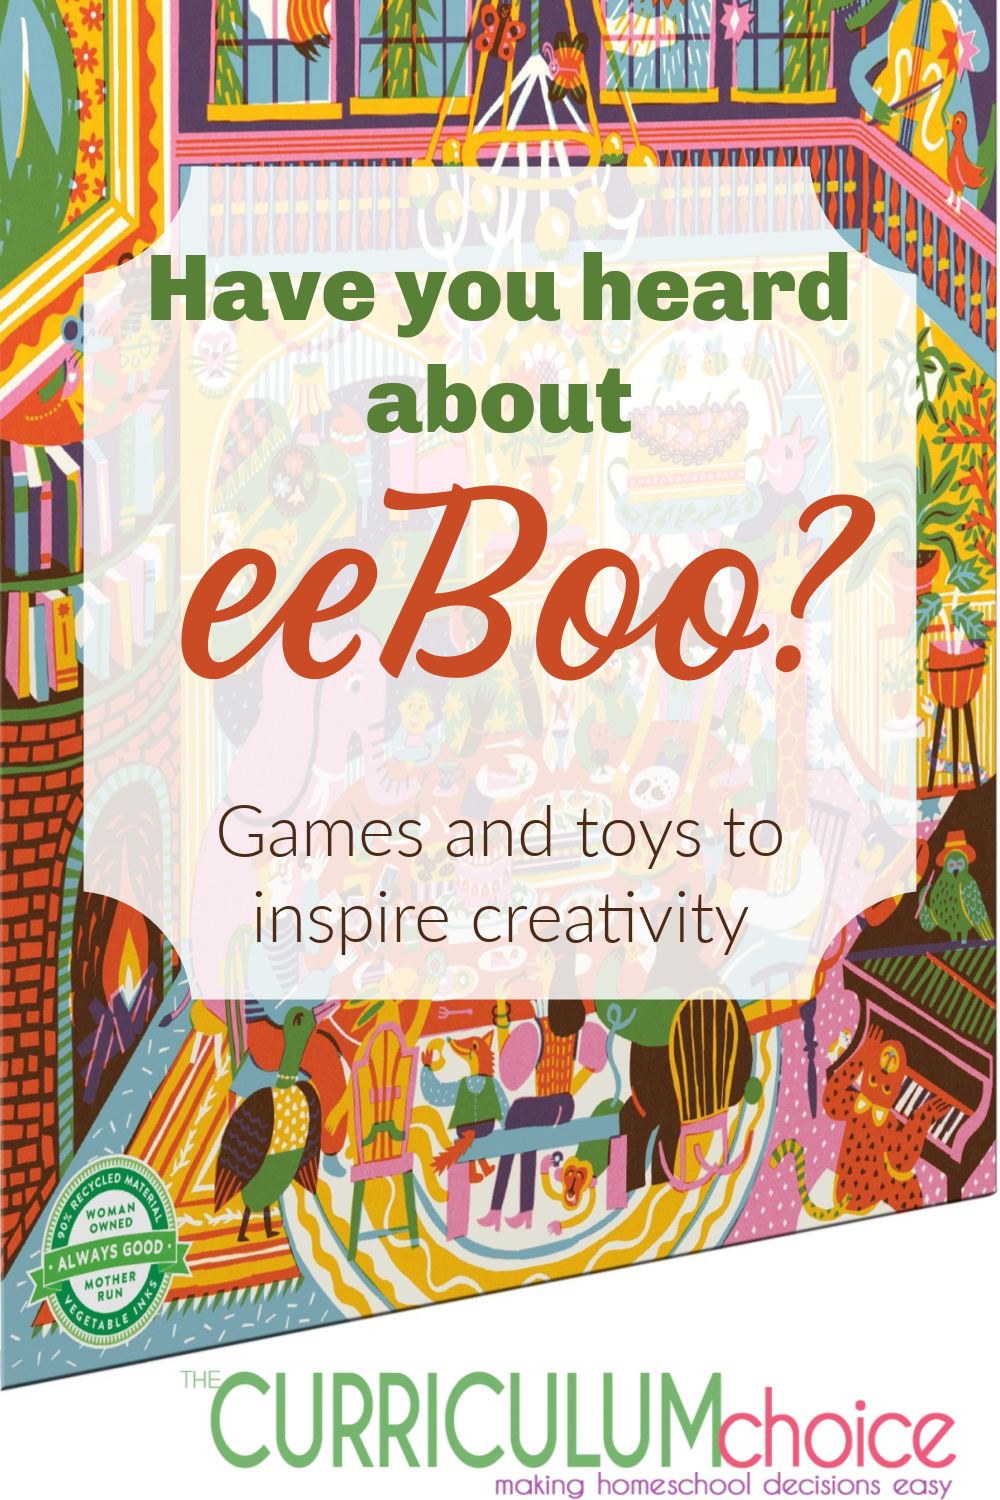 Eeboo offers safe and simple gifts and toys to play and share with your children. Puzzles, toys, educational games and more to inspire creativity. A review from The Curriculum Choice